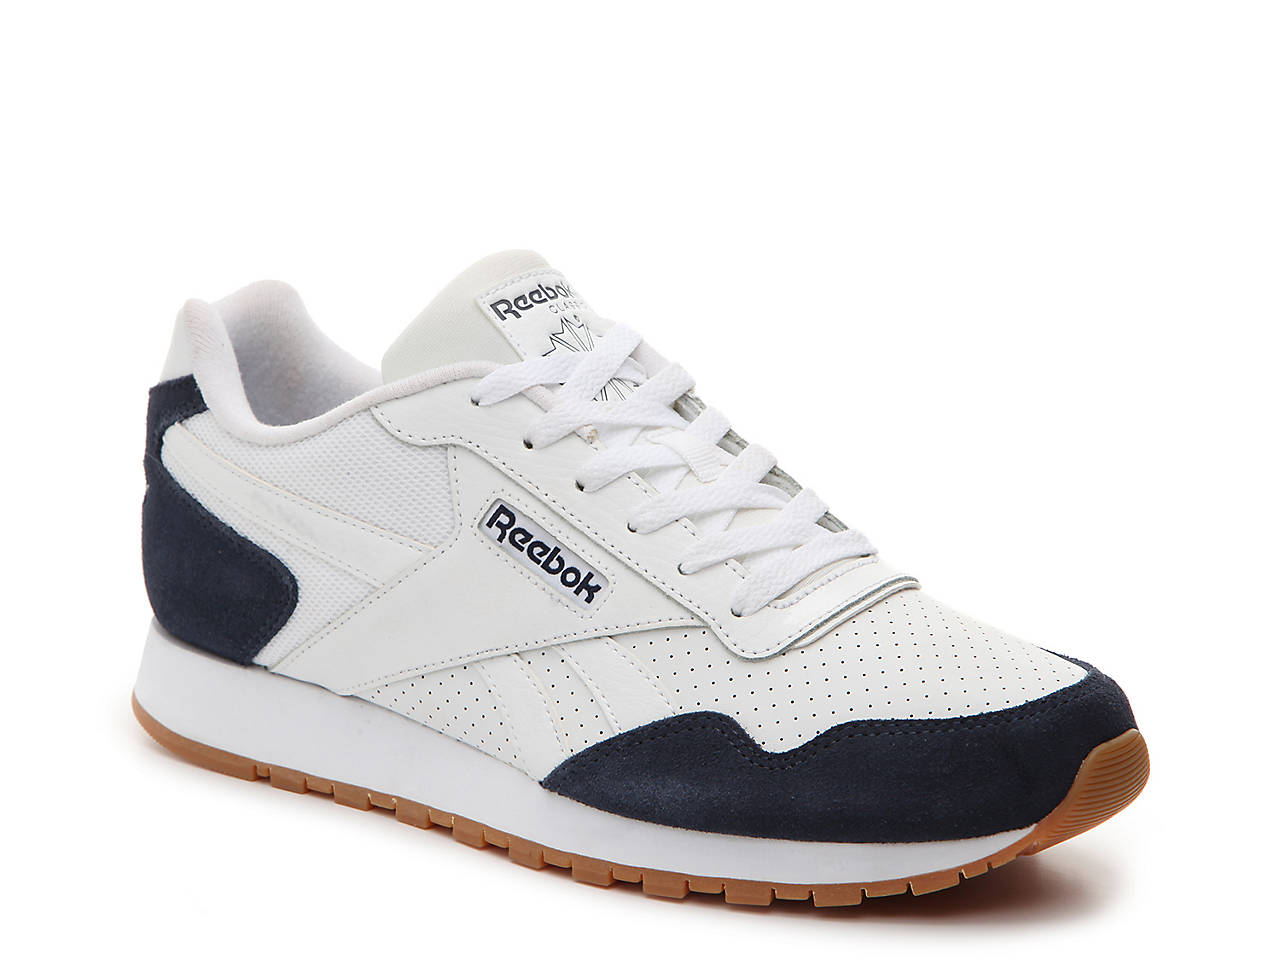 b3b075f8766e70 Reebok Harman Sneaker - Men s Men s Shoes